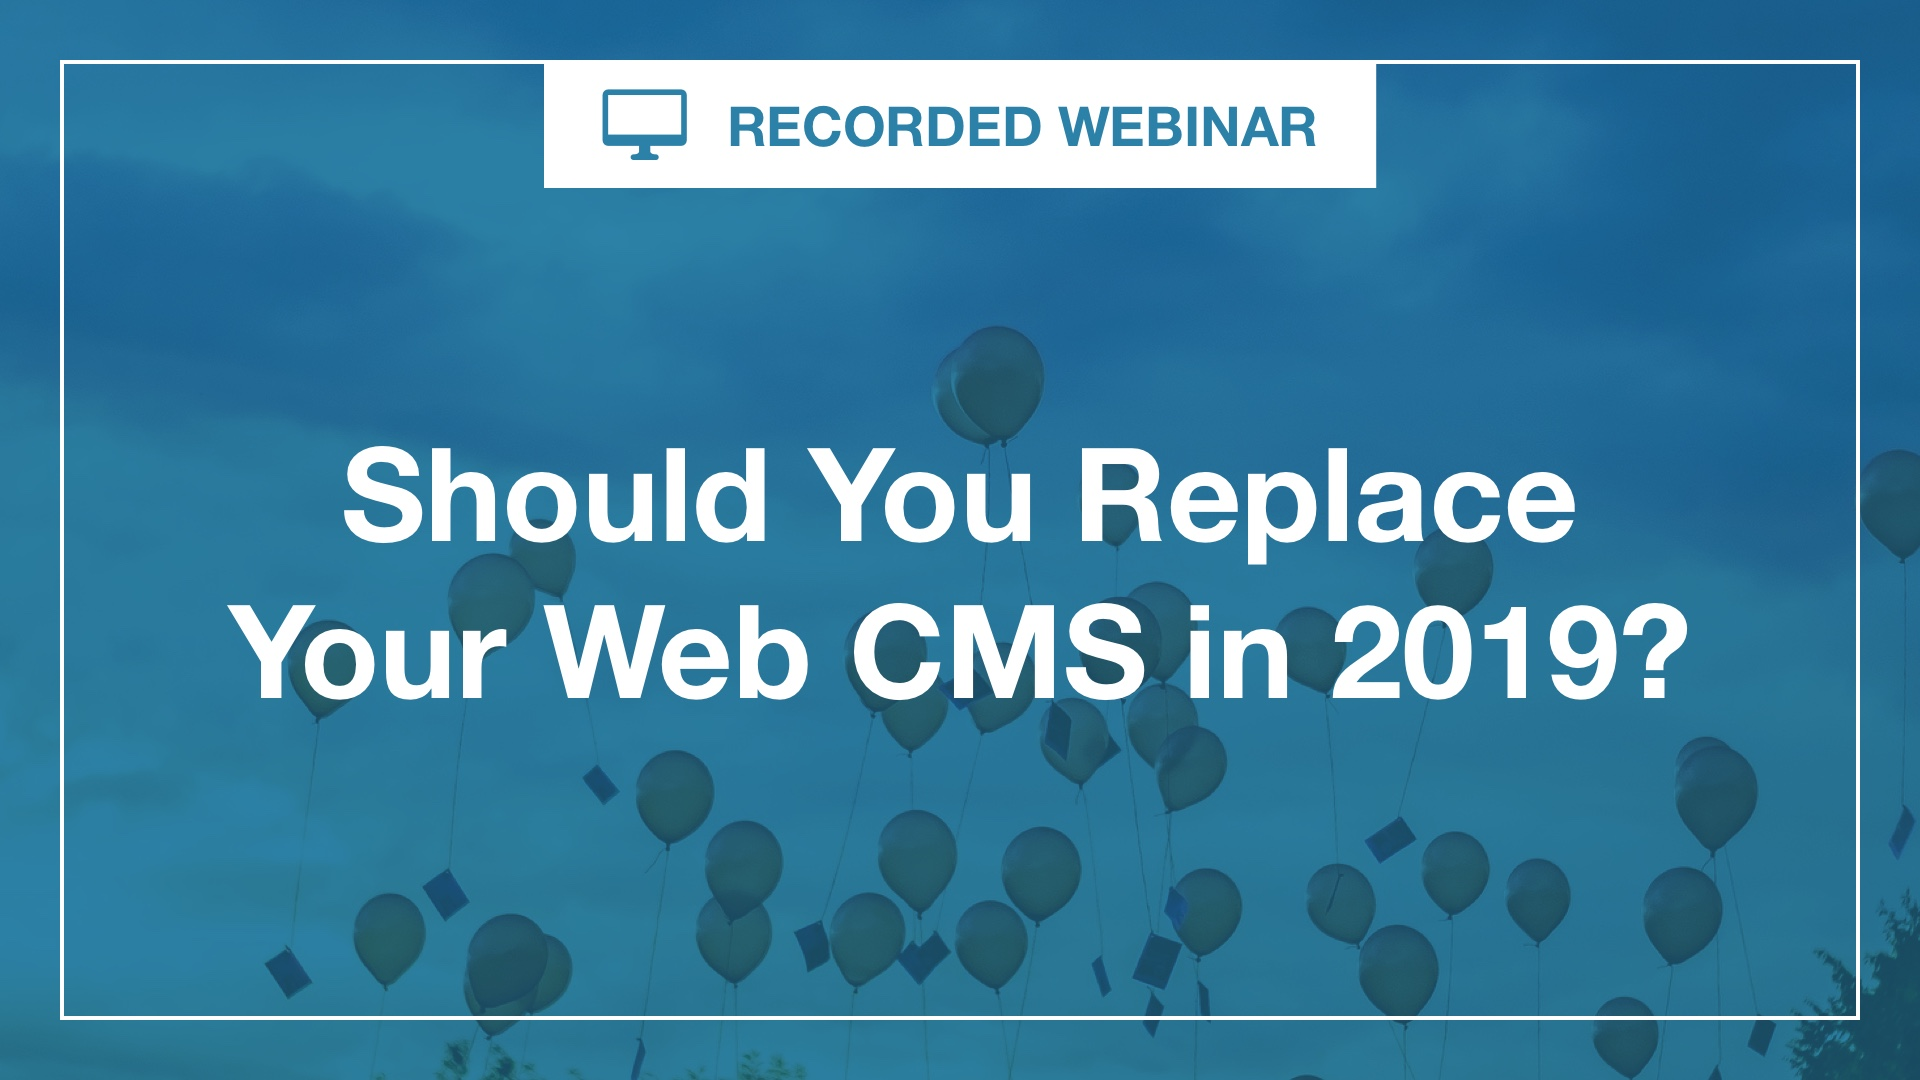 Should You Replace Your Web CMS in 2019